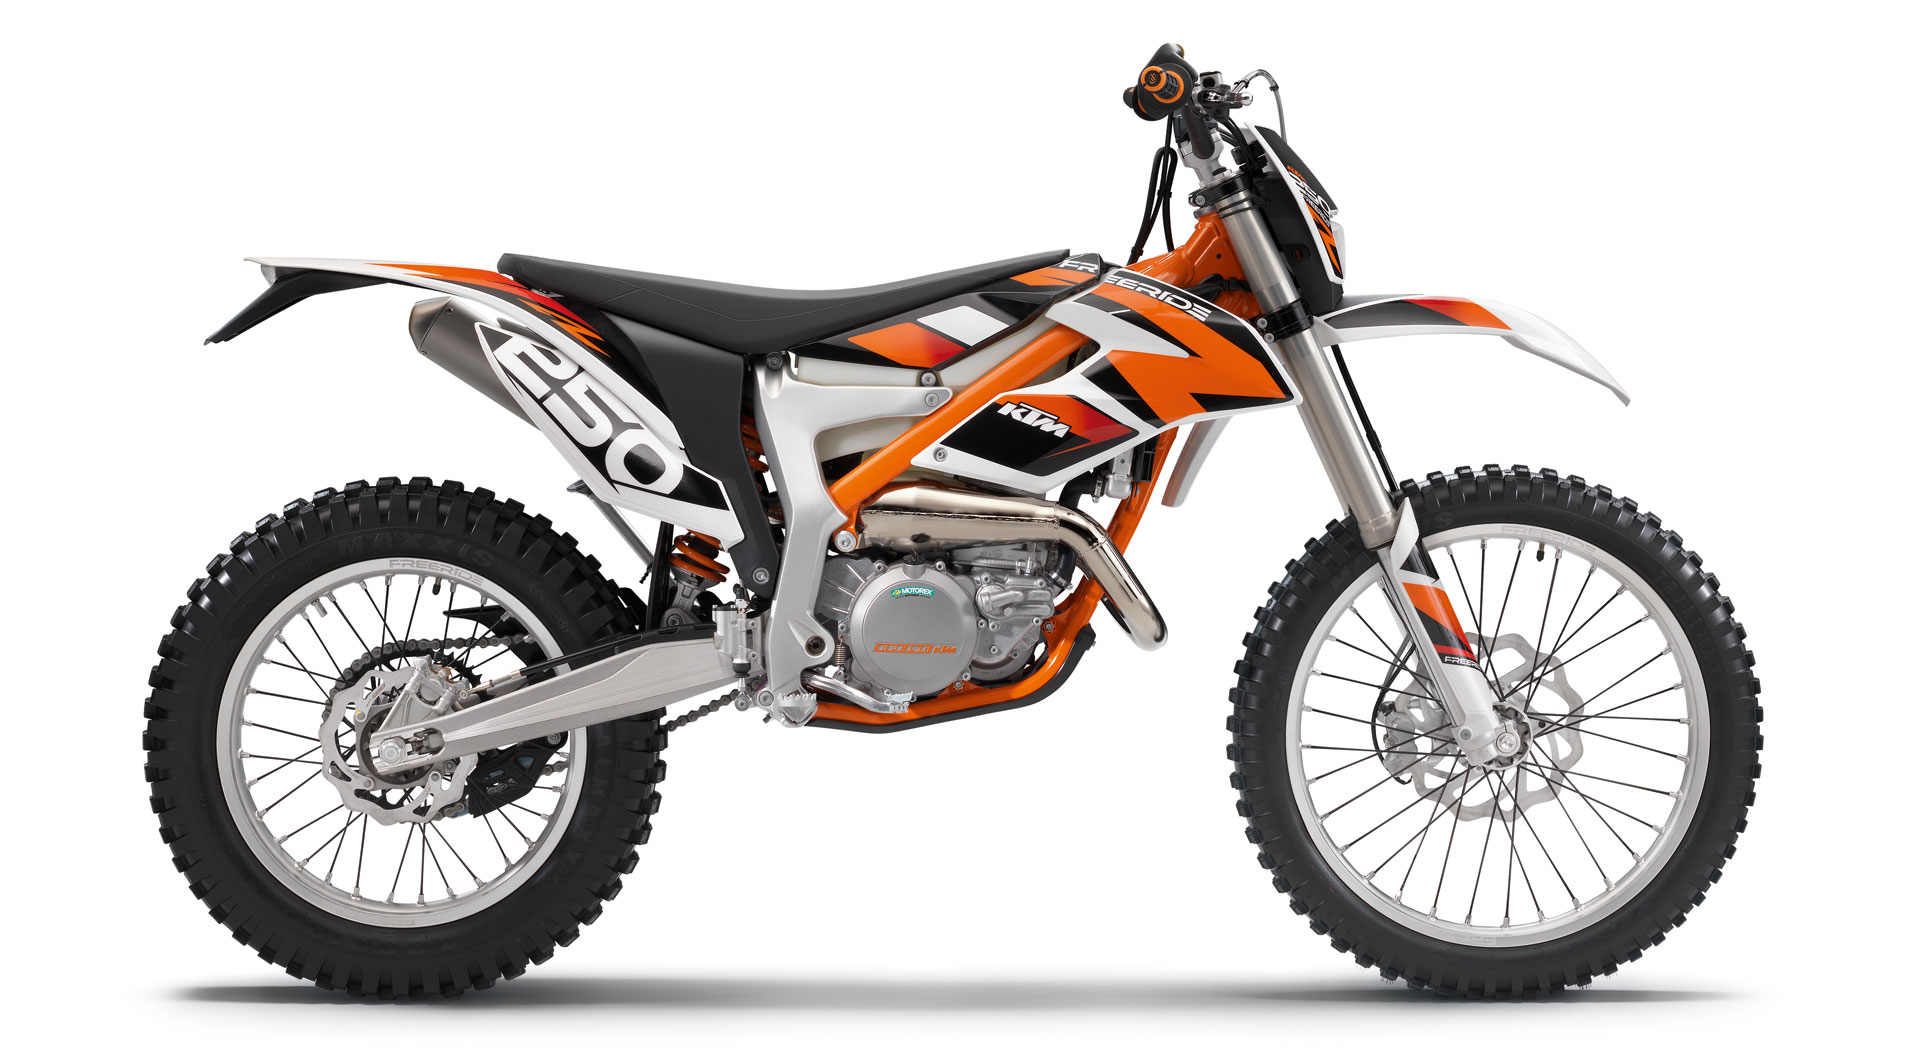 2014 ktm freeride 250r two stroke power in a 204 pound package news. Black Bedroom Furniture Sets. Home Design Ideas